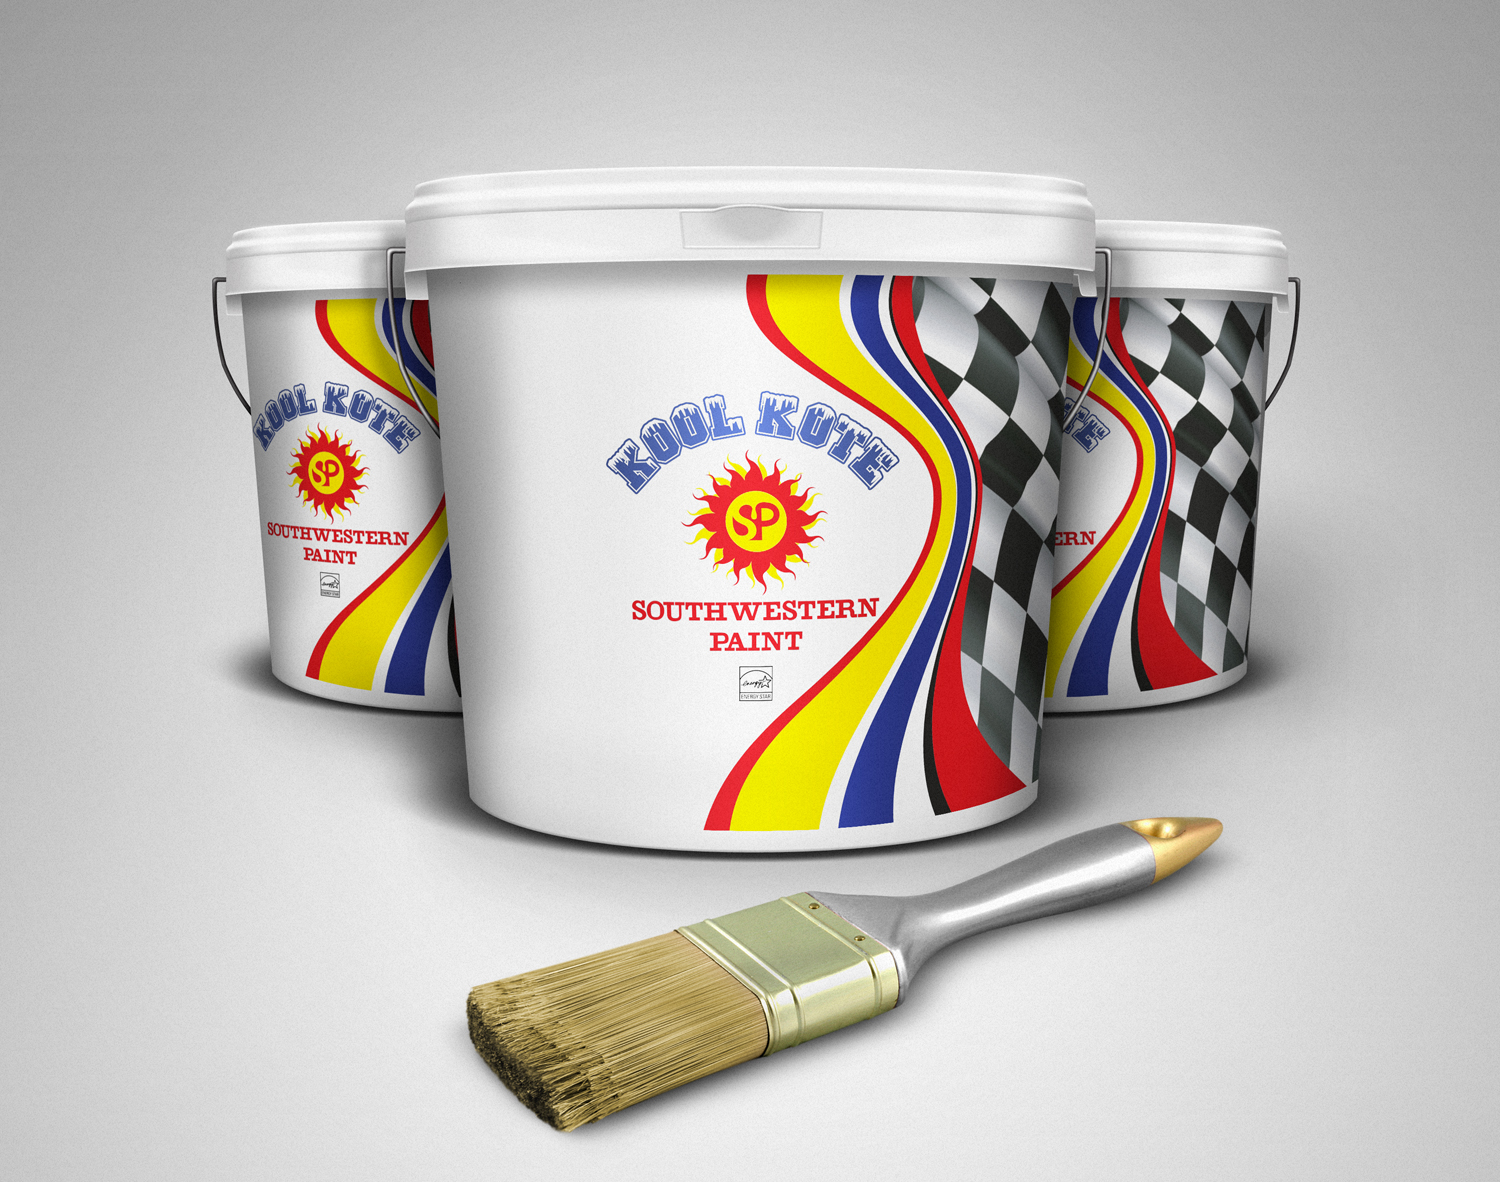 Modern Professional Roofing Packaging Design For Southwestern Paint By Maestroto Design 11558896